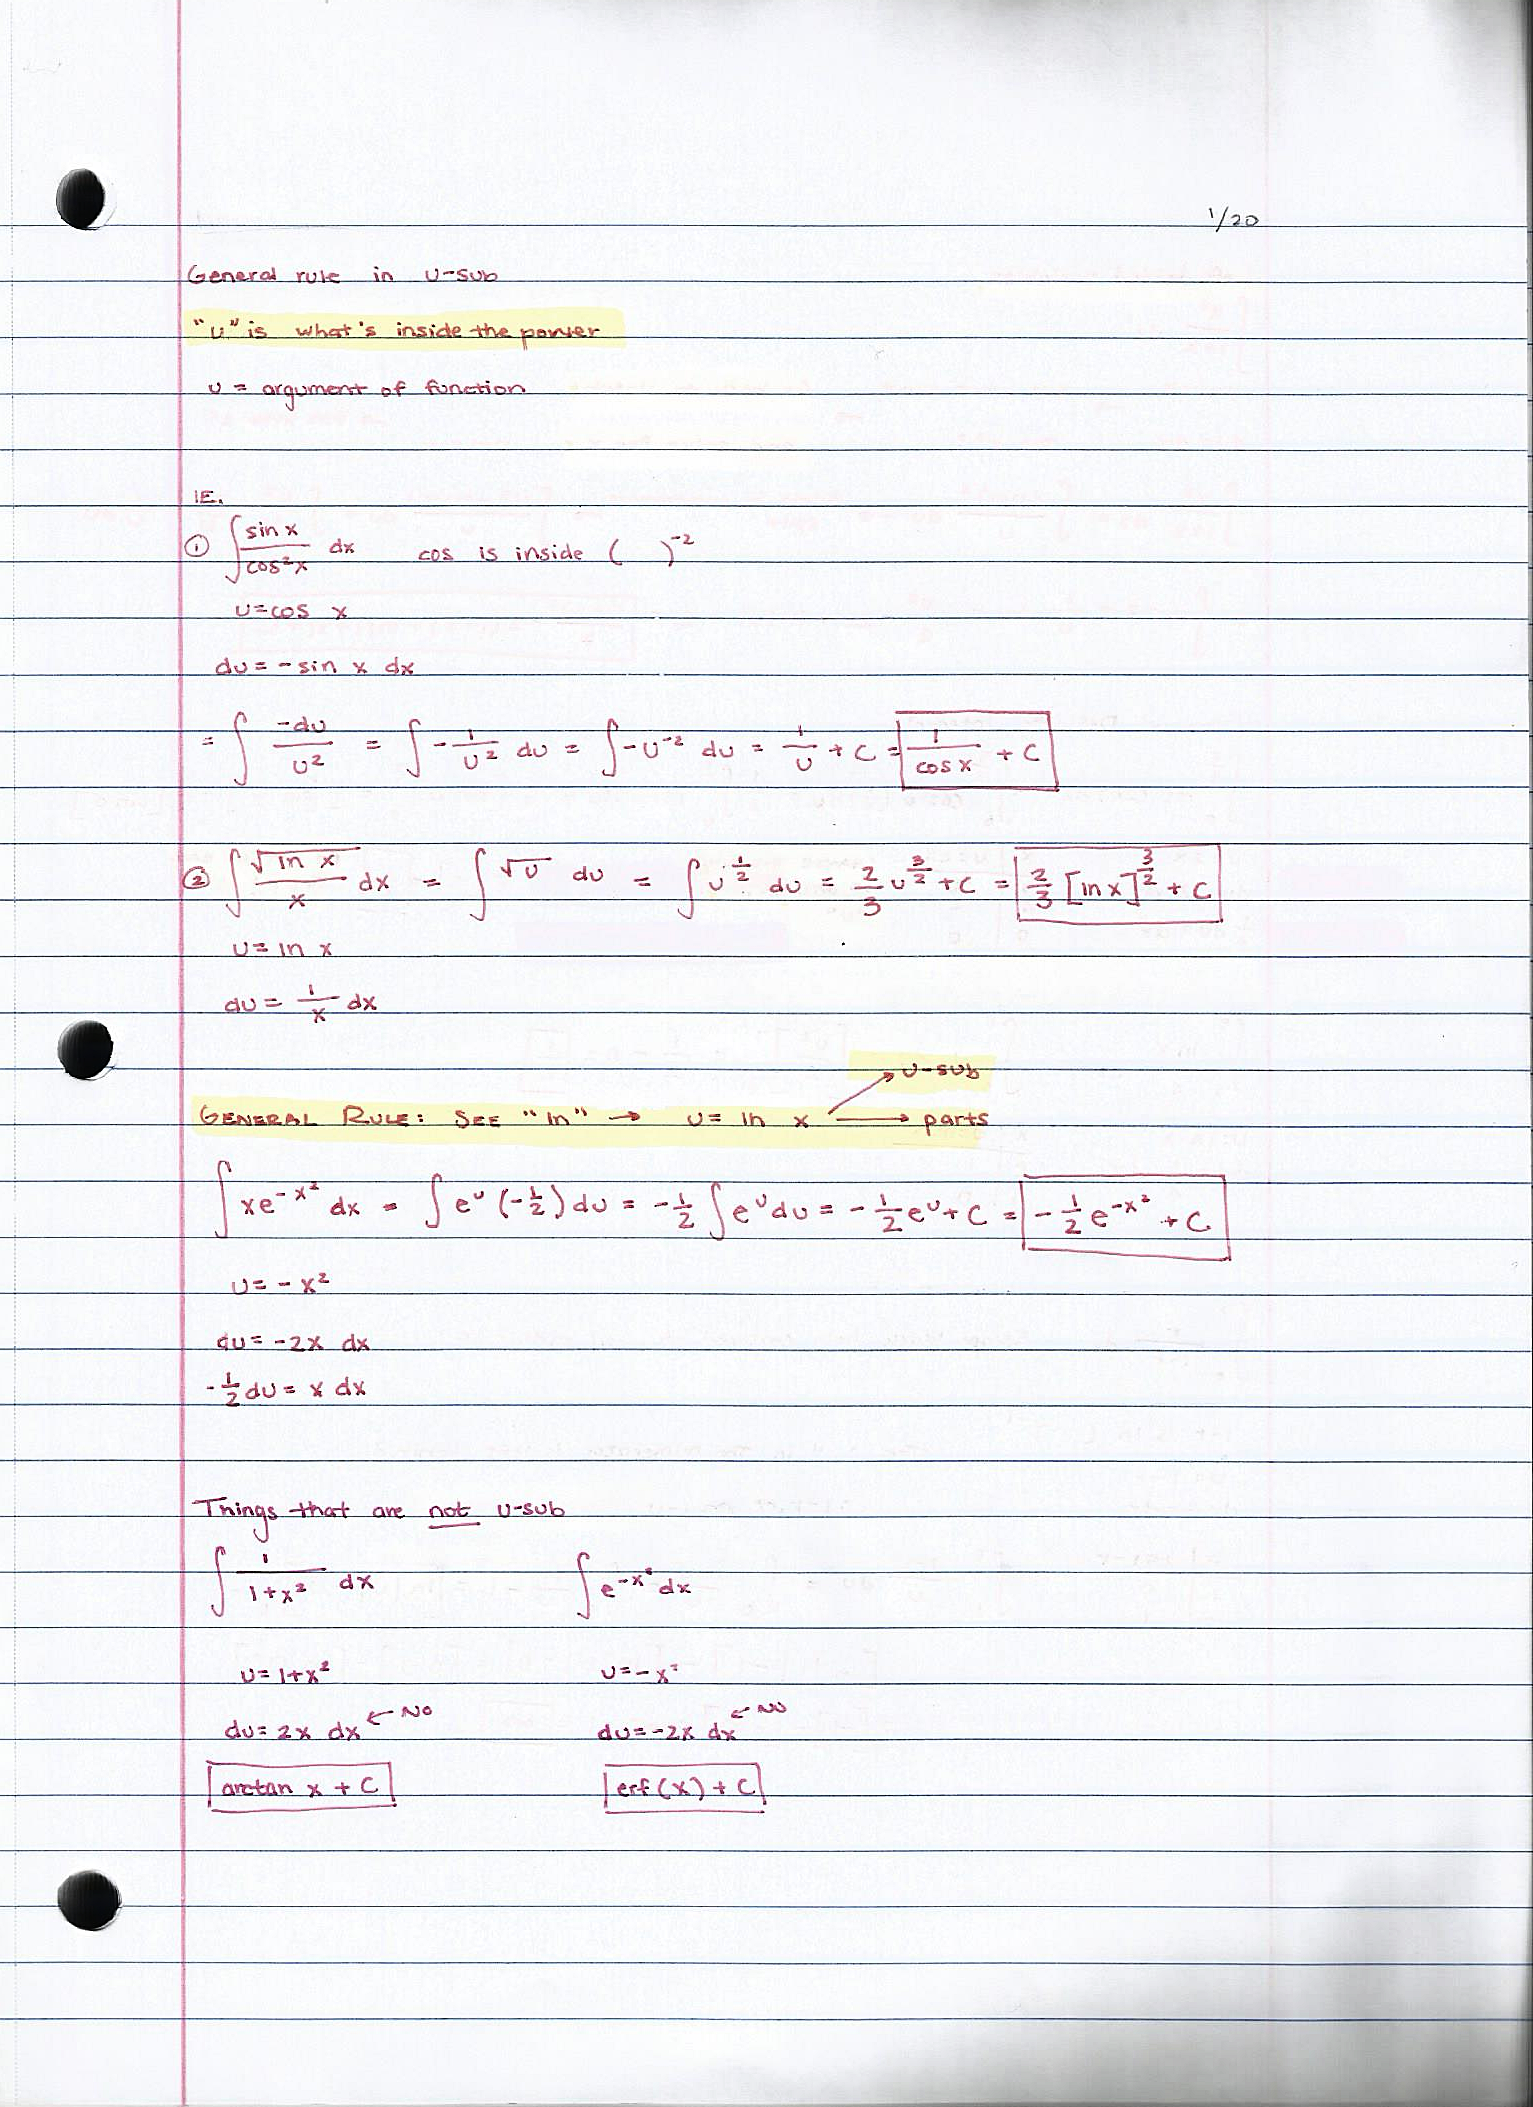 MA 408 - Class Notes - Week 1